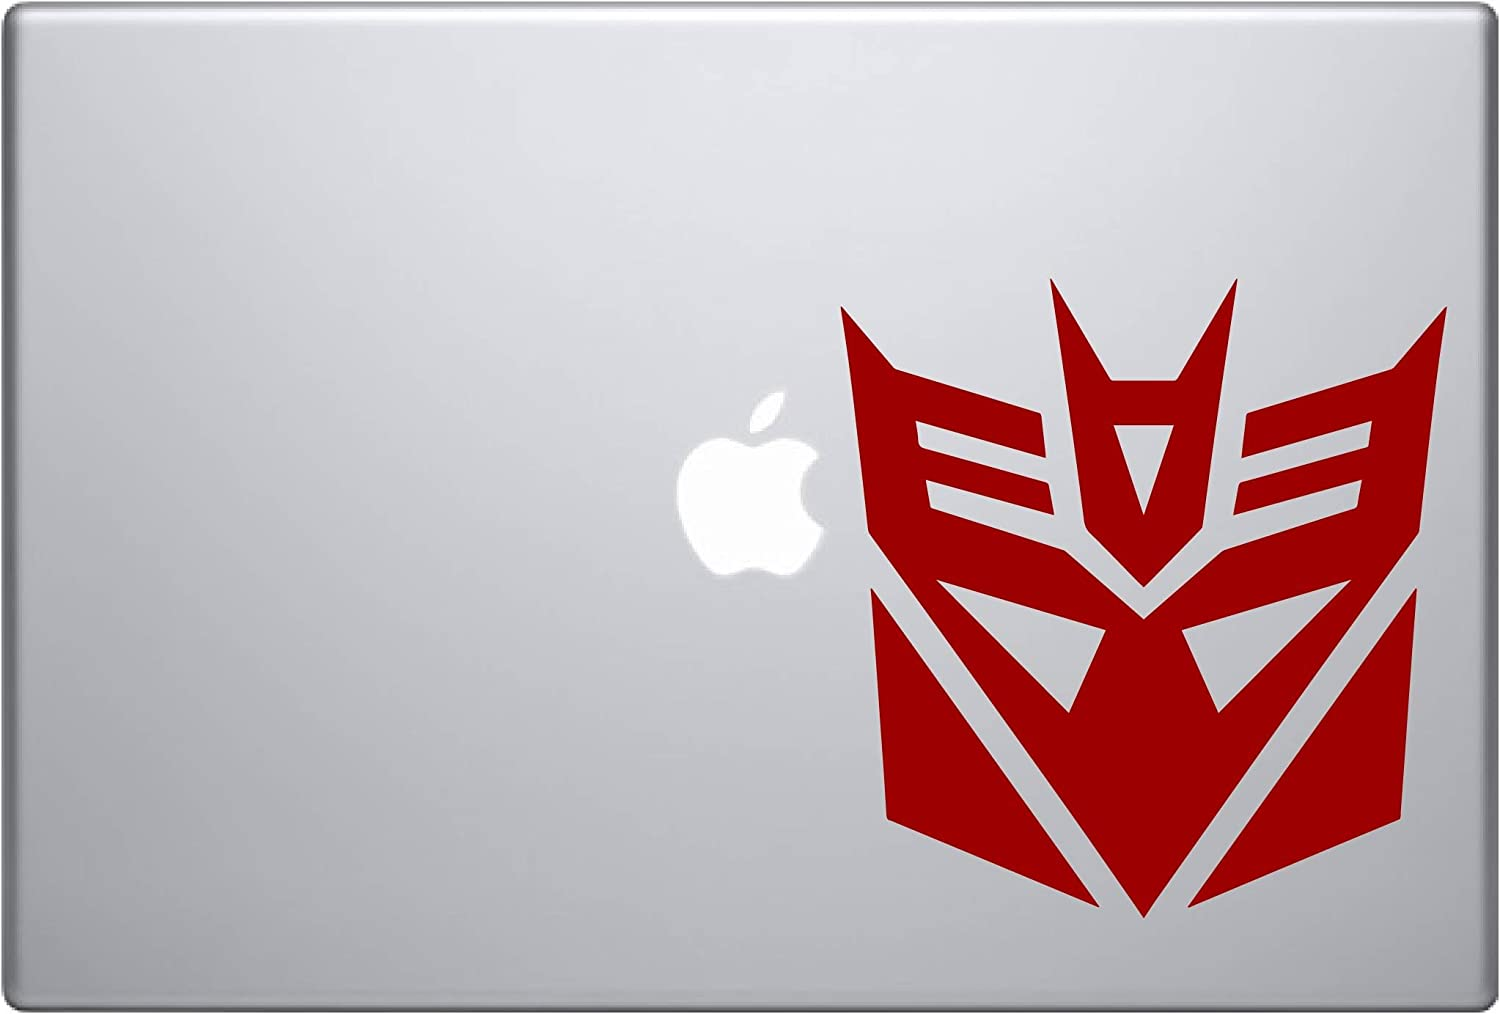 "Decepticon Transformer (Red 4"") Vinyl Decal Sticker for Car Automobile Window Wall Laptop Notebook Etc.... Any Smooth Surface Such As Windows Bumpers"